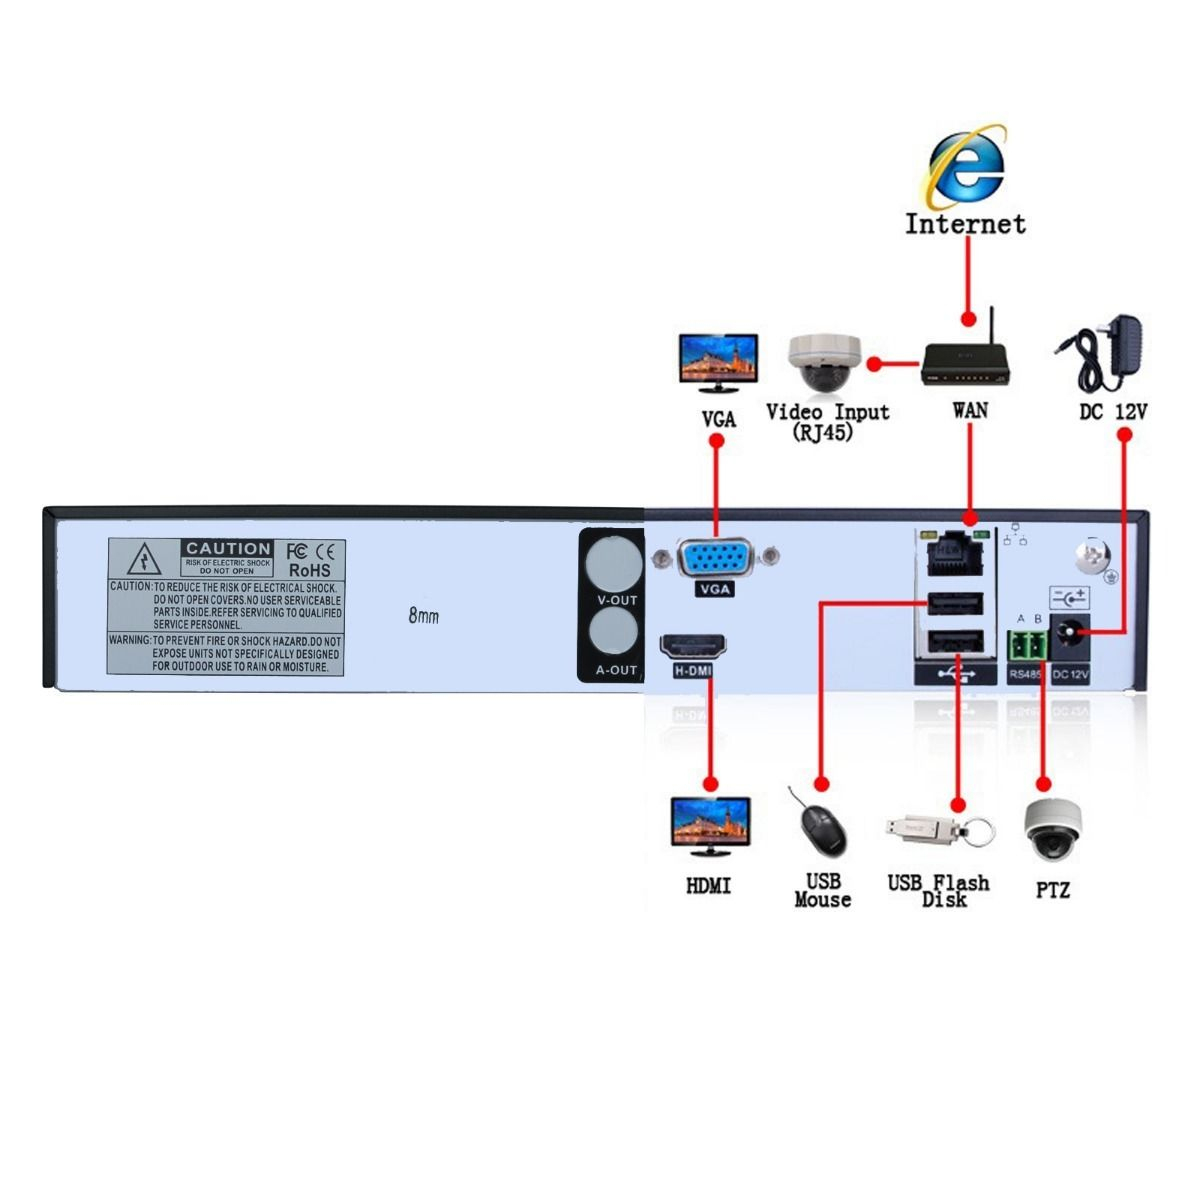 hight resolution of cat 5 wiring diagram for poe camera wiring diagram ip camera wiring diagram